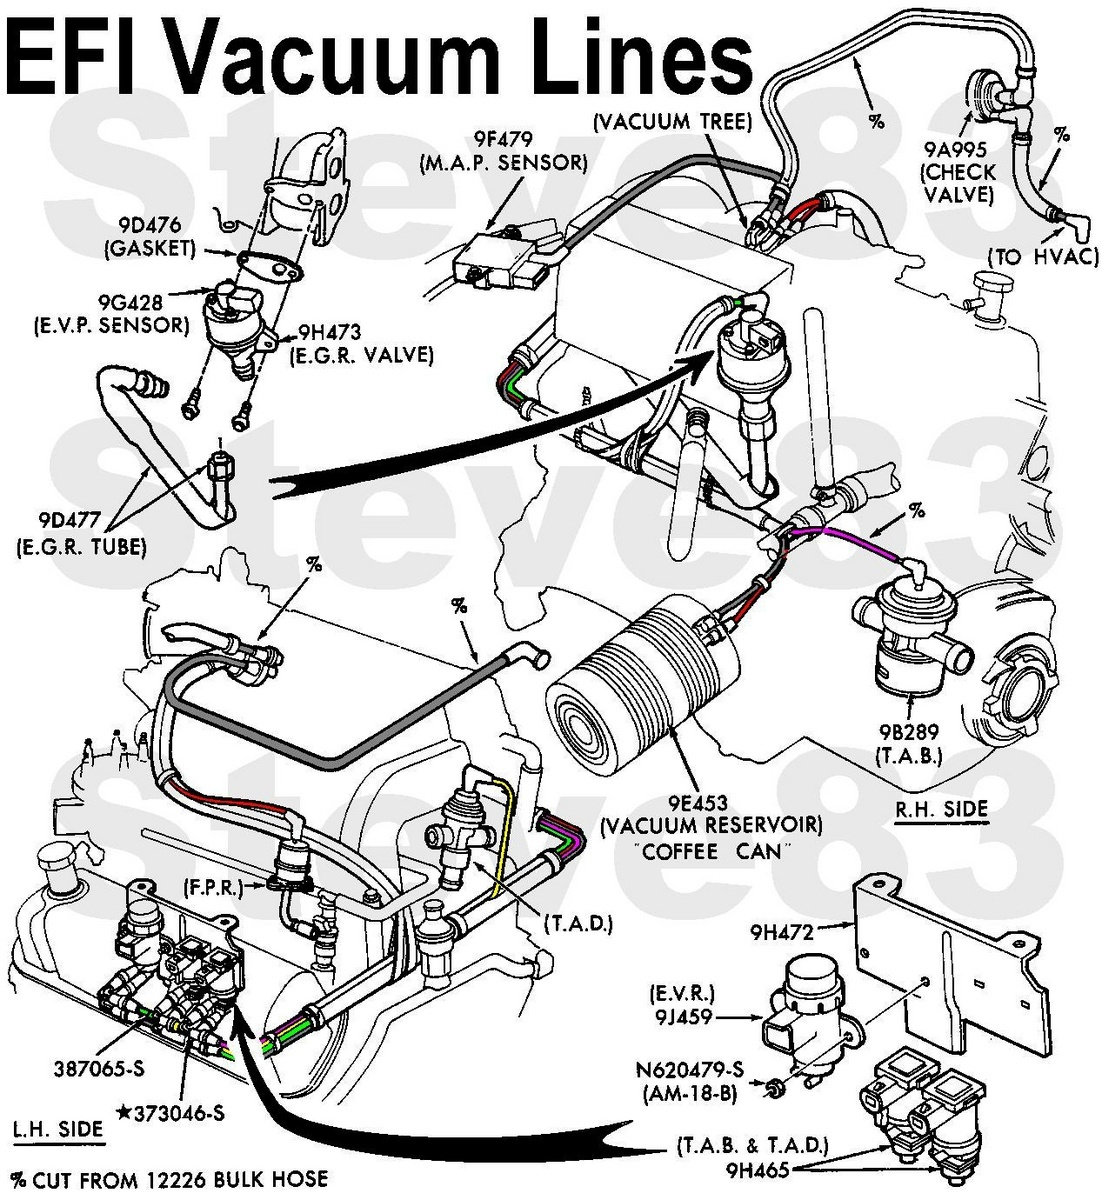 1990 Ford F 150 Engine Diagram in addition Fuel Shut Off Solenoid 239021 besides 1992 Jeep Wrangler Door Jam Switch Wiring Diagram additionally Chrysler 2006 Town And Country Wiring Diagram in addition Jeep Cherokee 1997 2001 Fuse Box Diagram 398208. on fuse box 2013 jeep wrangler